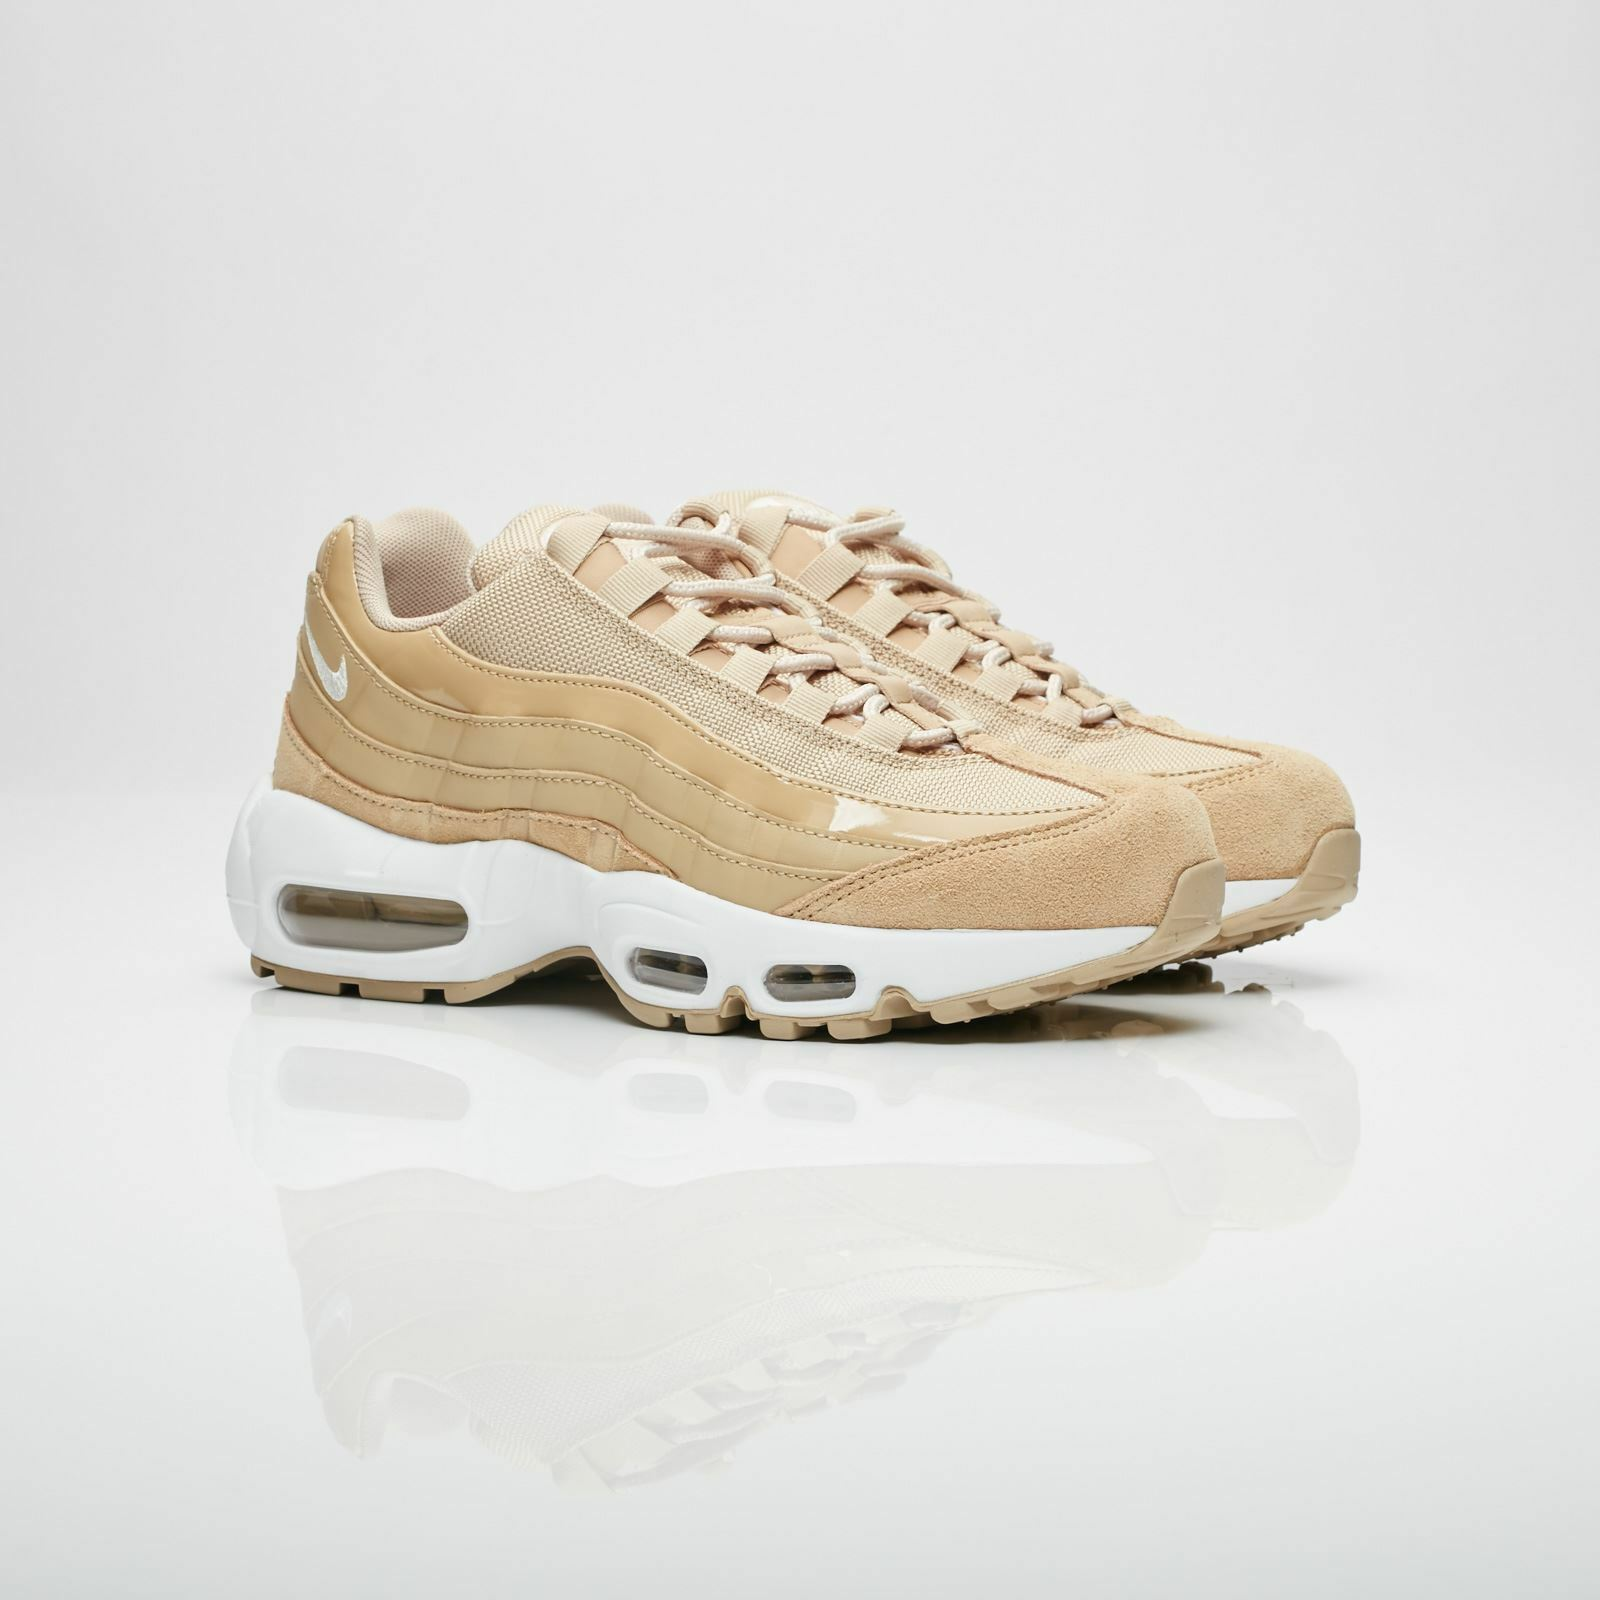 Nike Womens Air Max 95 201 Mushroom Beige Trainers 307960 201 95 688c0f